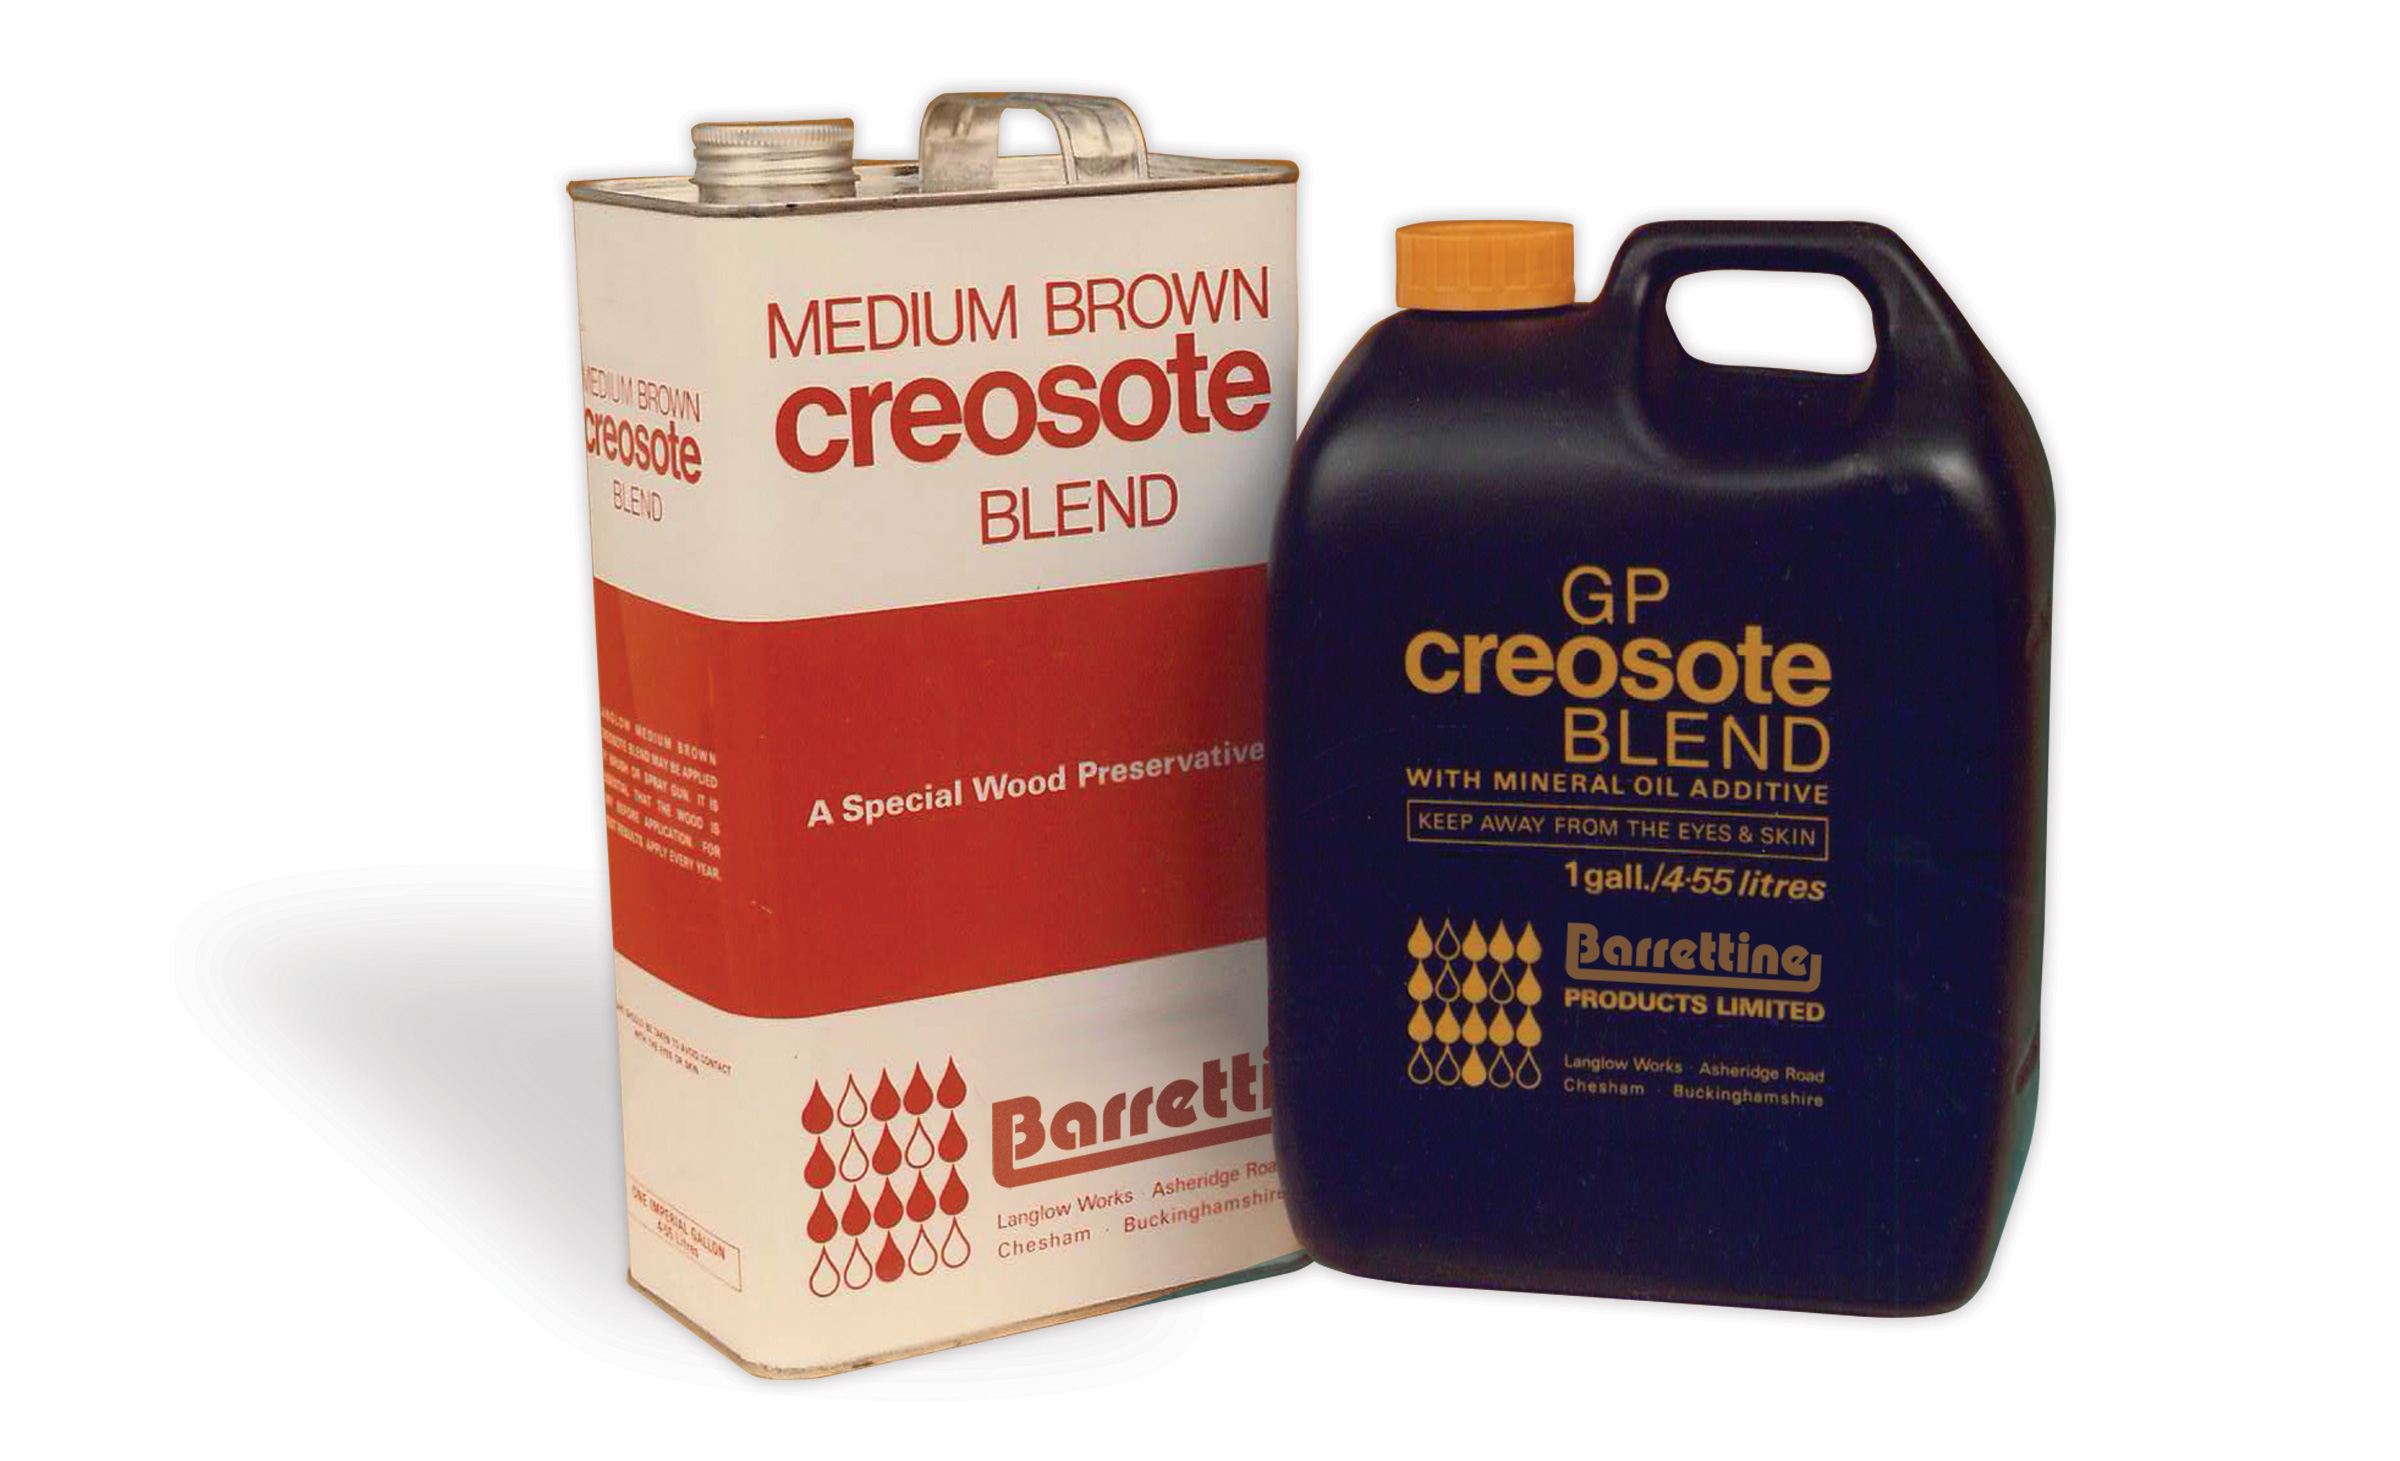 Barrettine Products